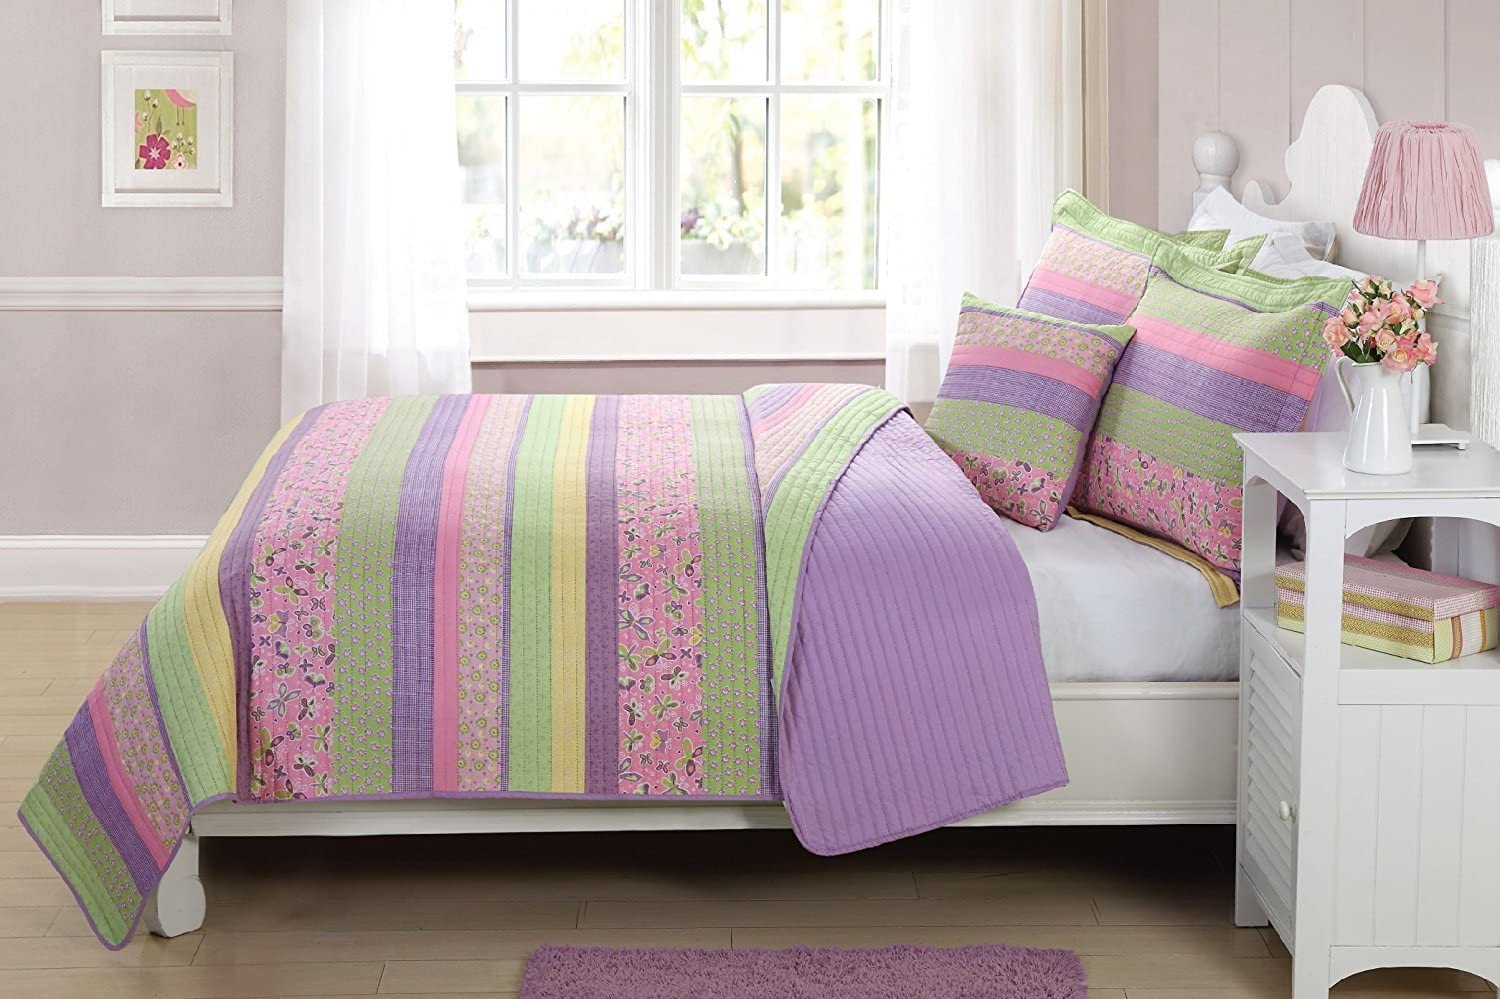 Full/Queen 4pc Bedspread Set for Girls/Teens Stripes Butterflies Flowers Lavender Yellow Lime Green Pink New